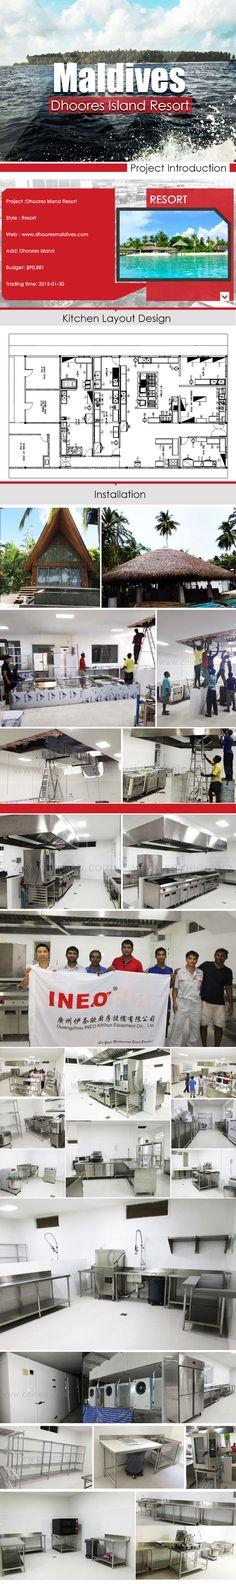 Fast Food Restaurant Kitchen Equipment ecity hotel-malaysia hotelkitchen equipment | restaurant equipment